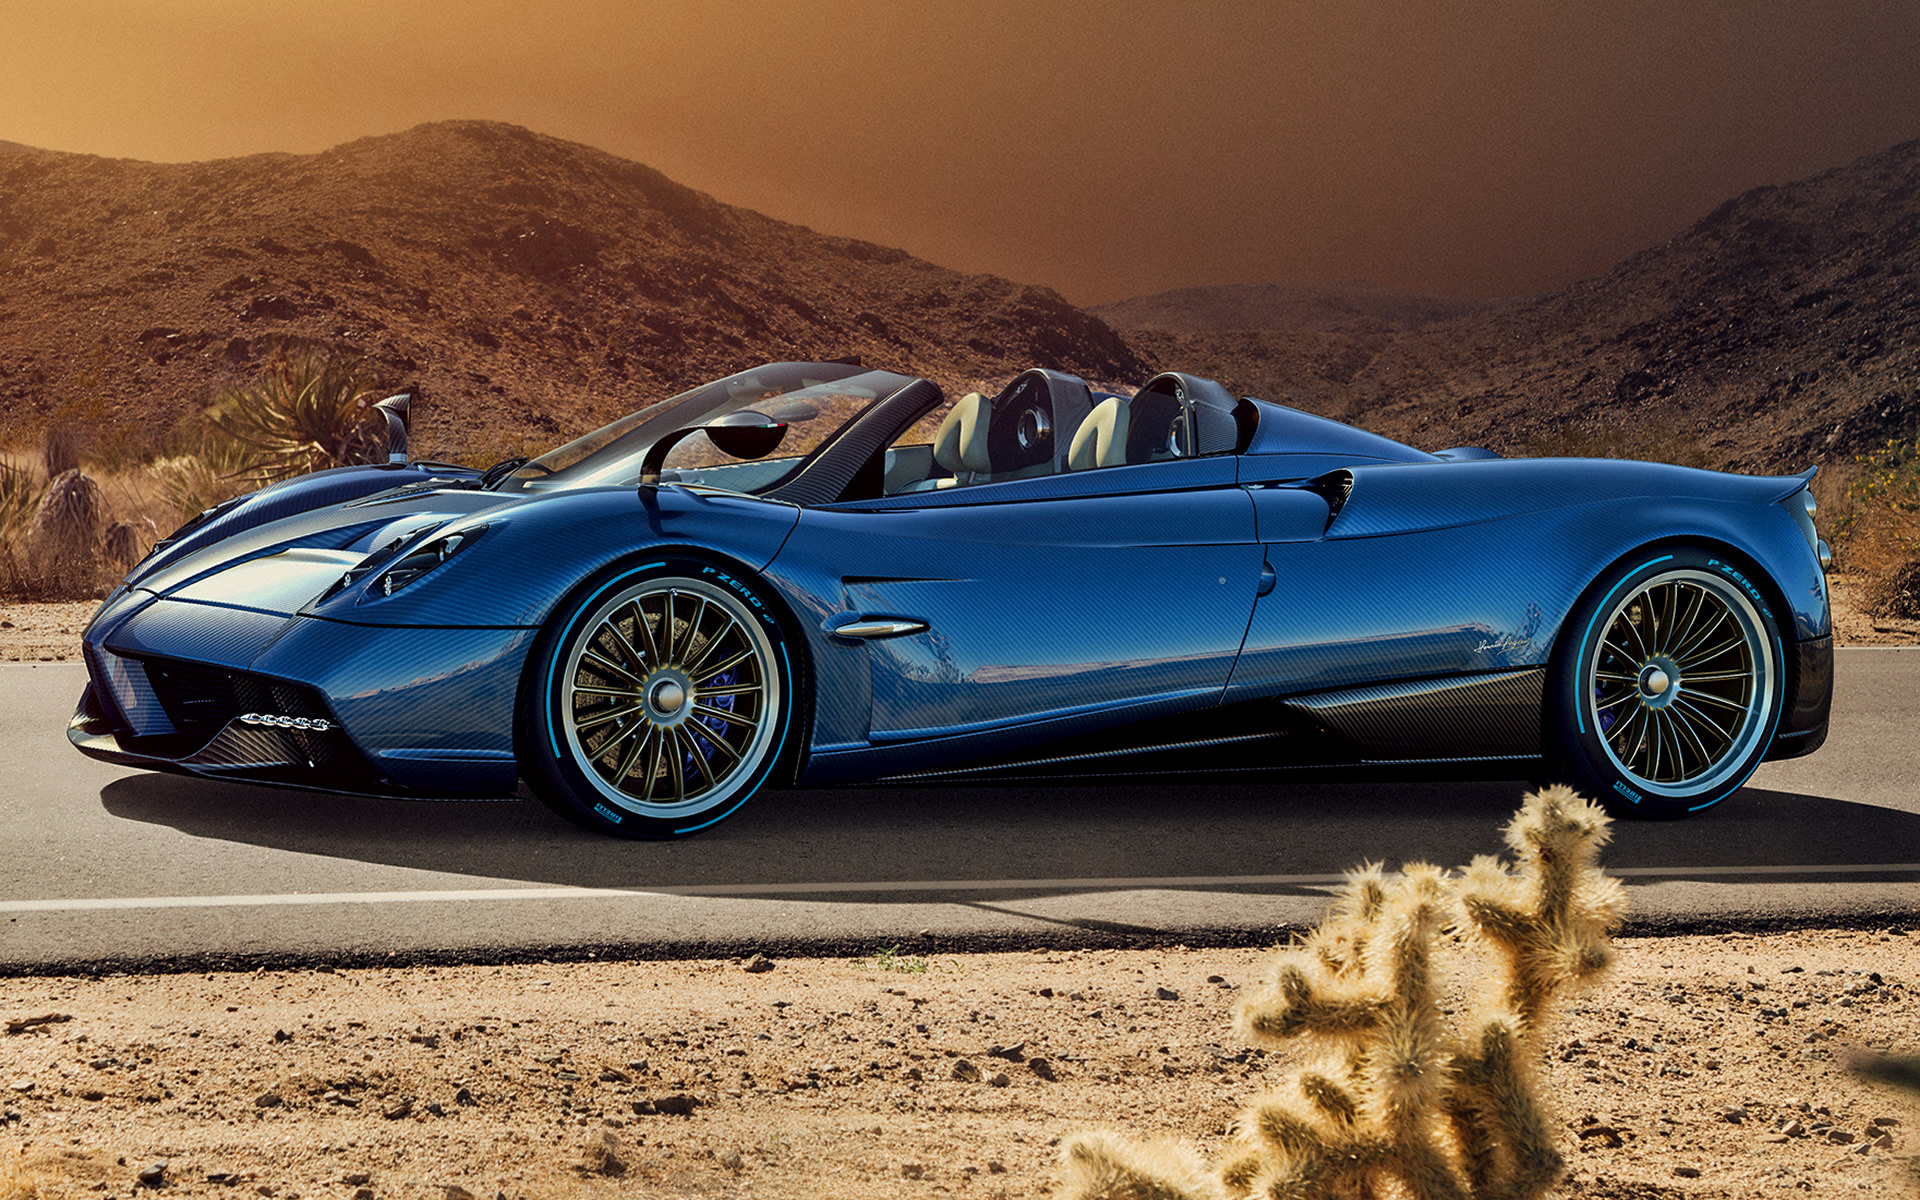 2017 Pagani Huayra Roadster Wallpapers And Hd Images